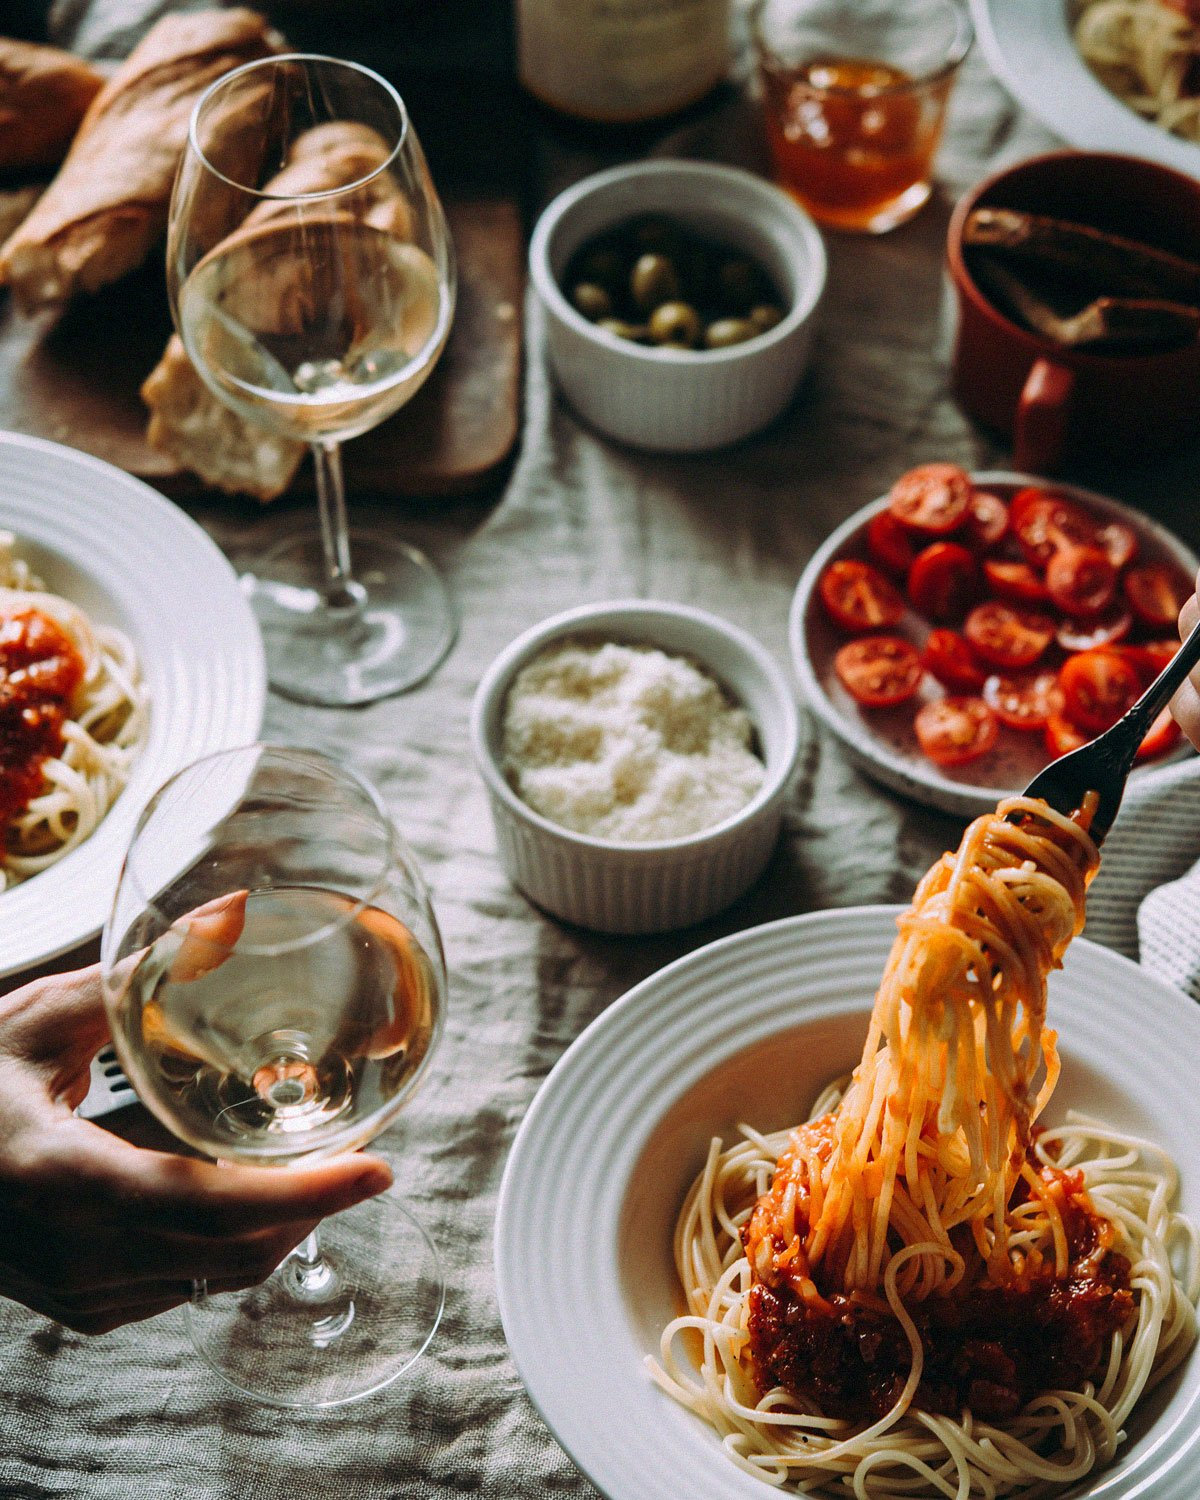 Spaghetti and Meatballs Dinner with Wine on table